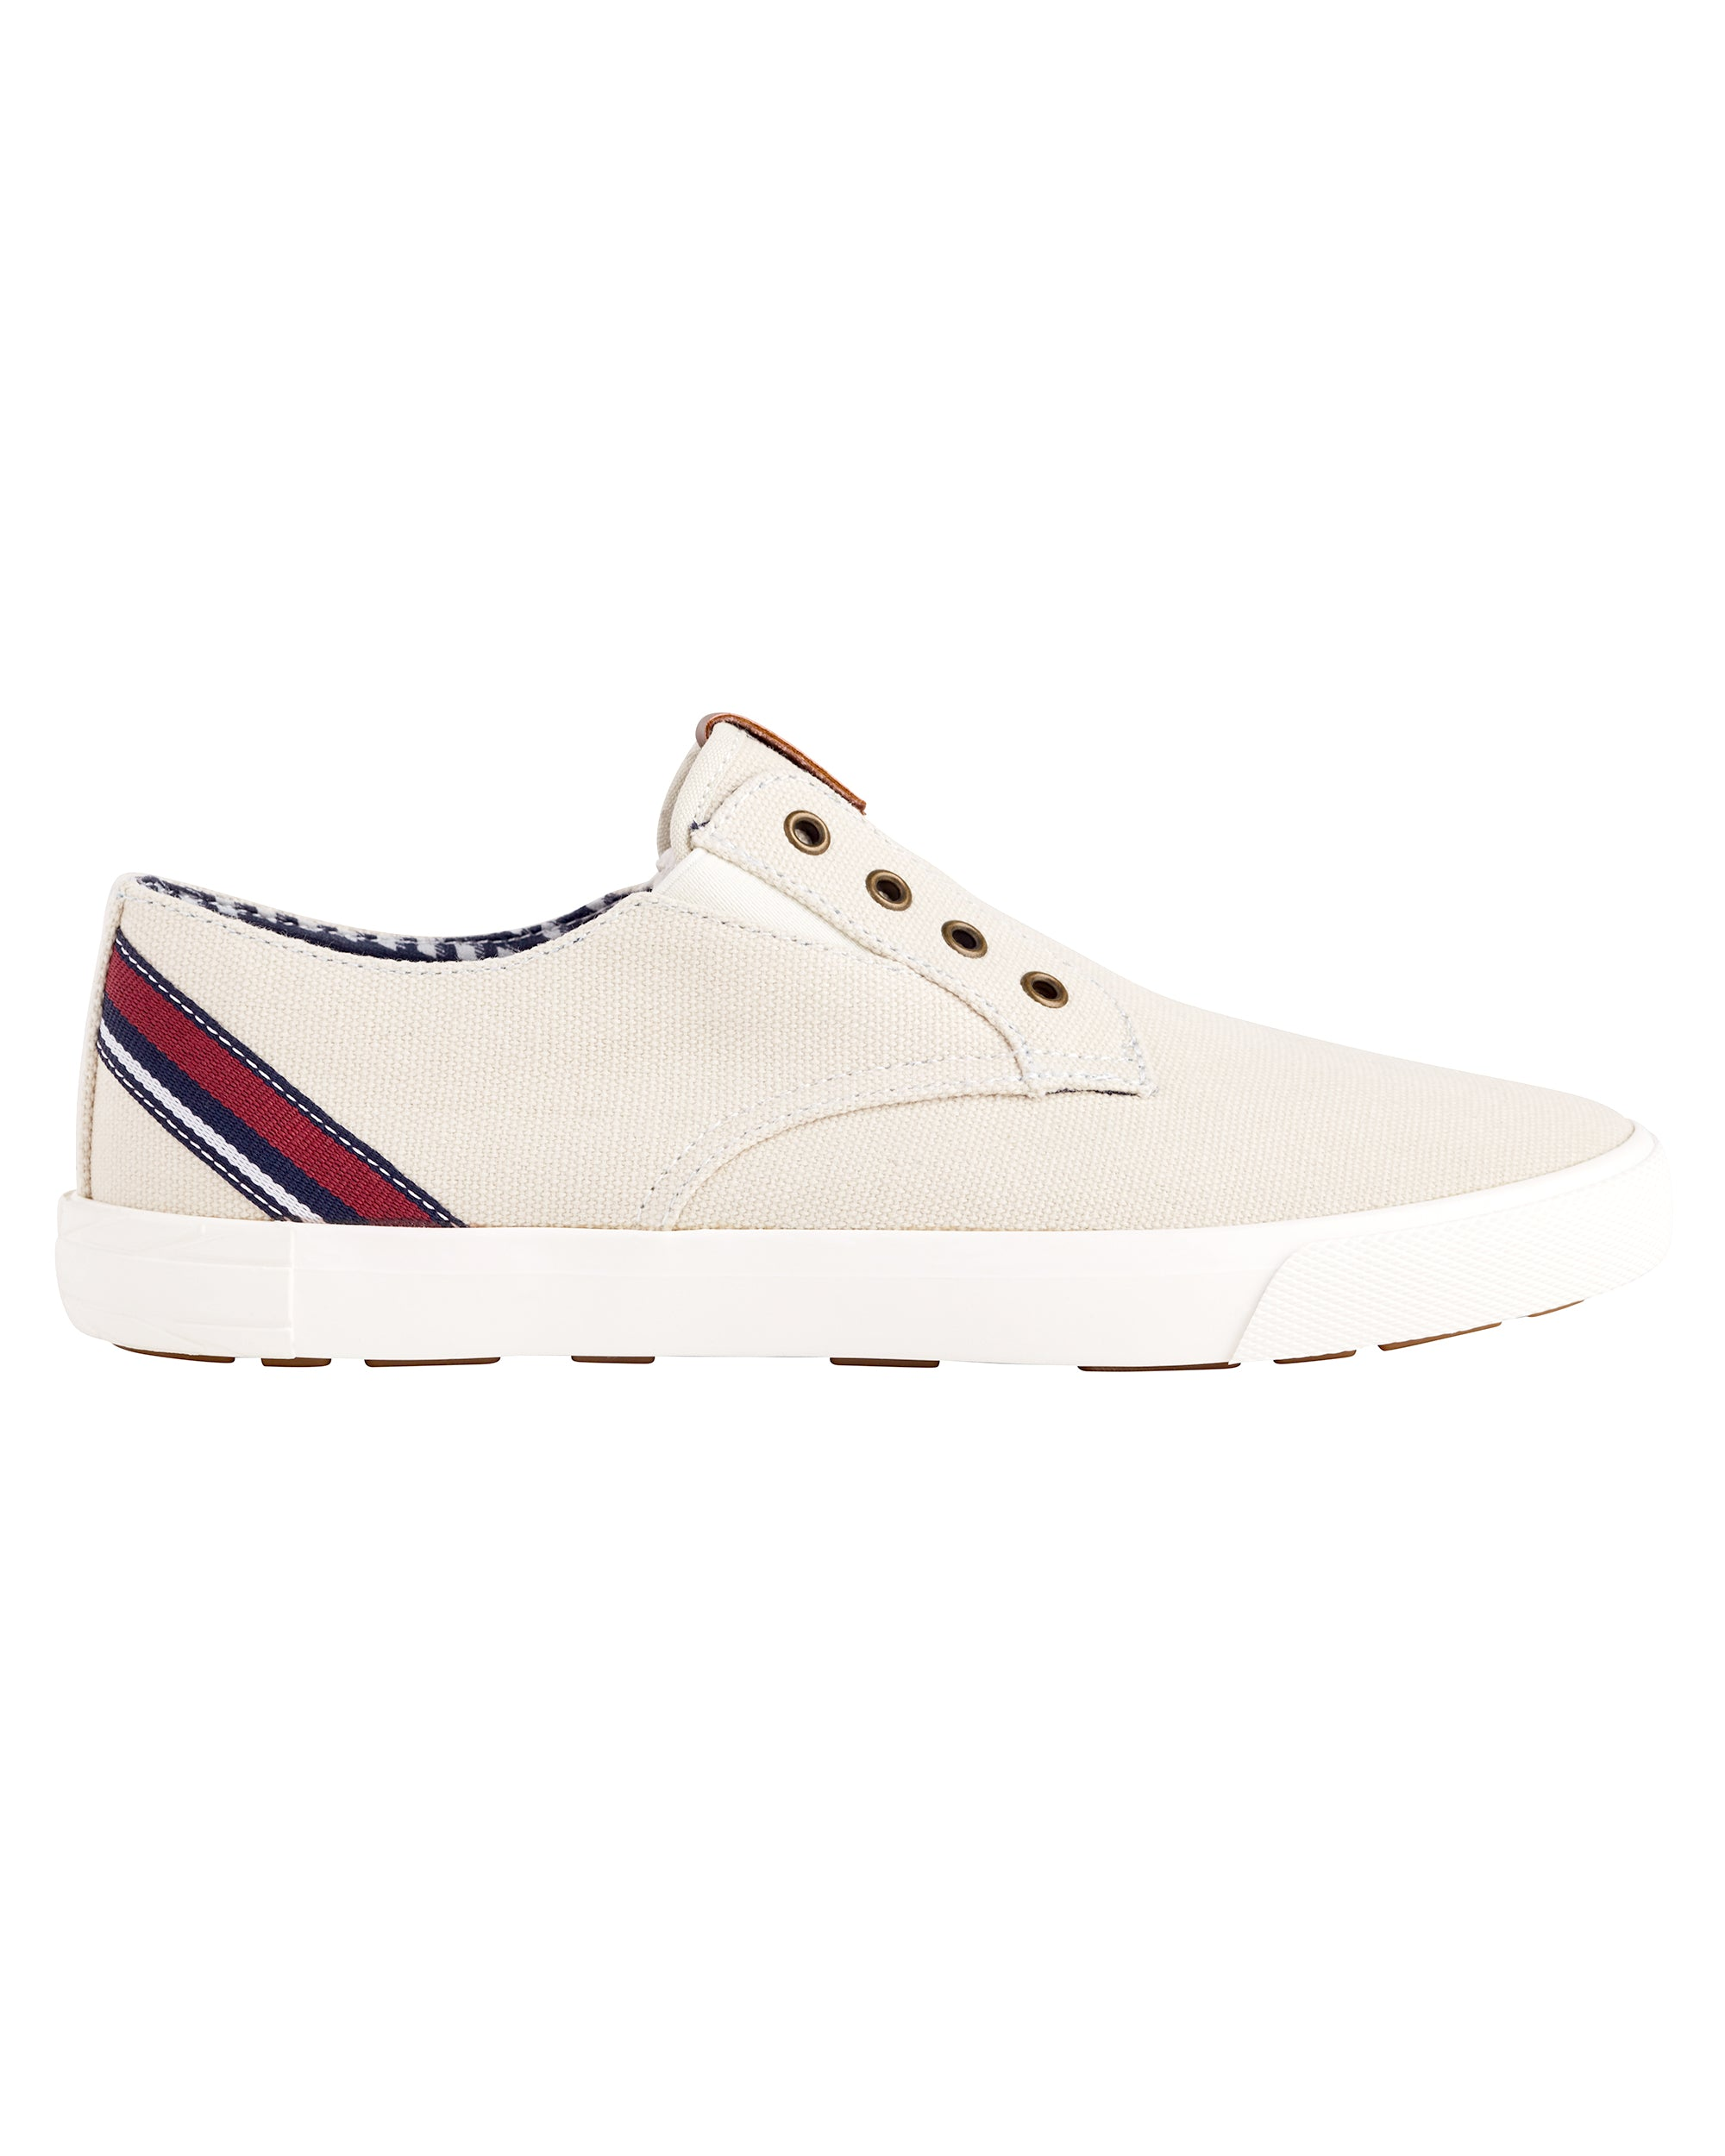 Pete Laceless Canvas Sneaker - Stone